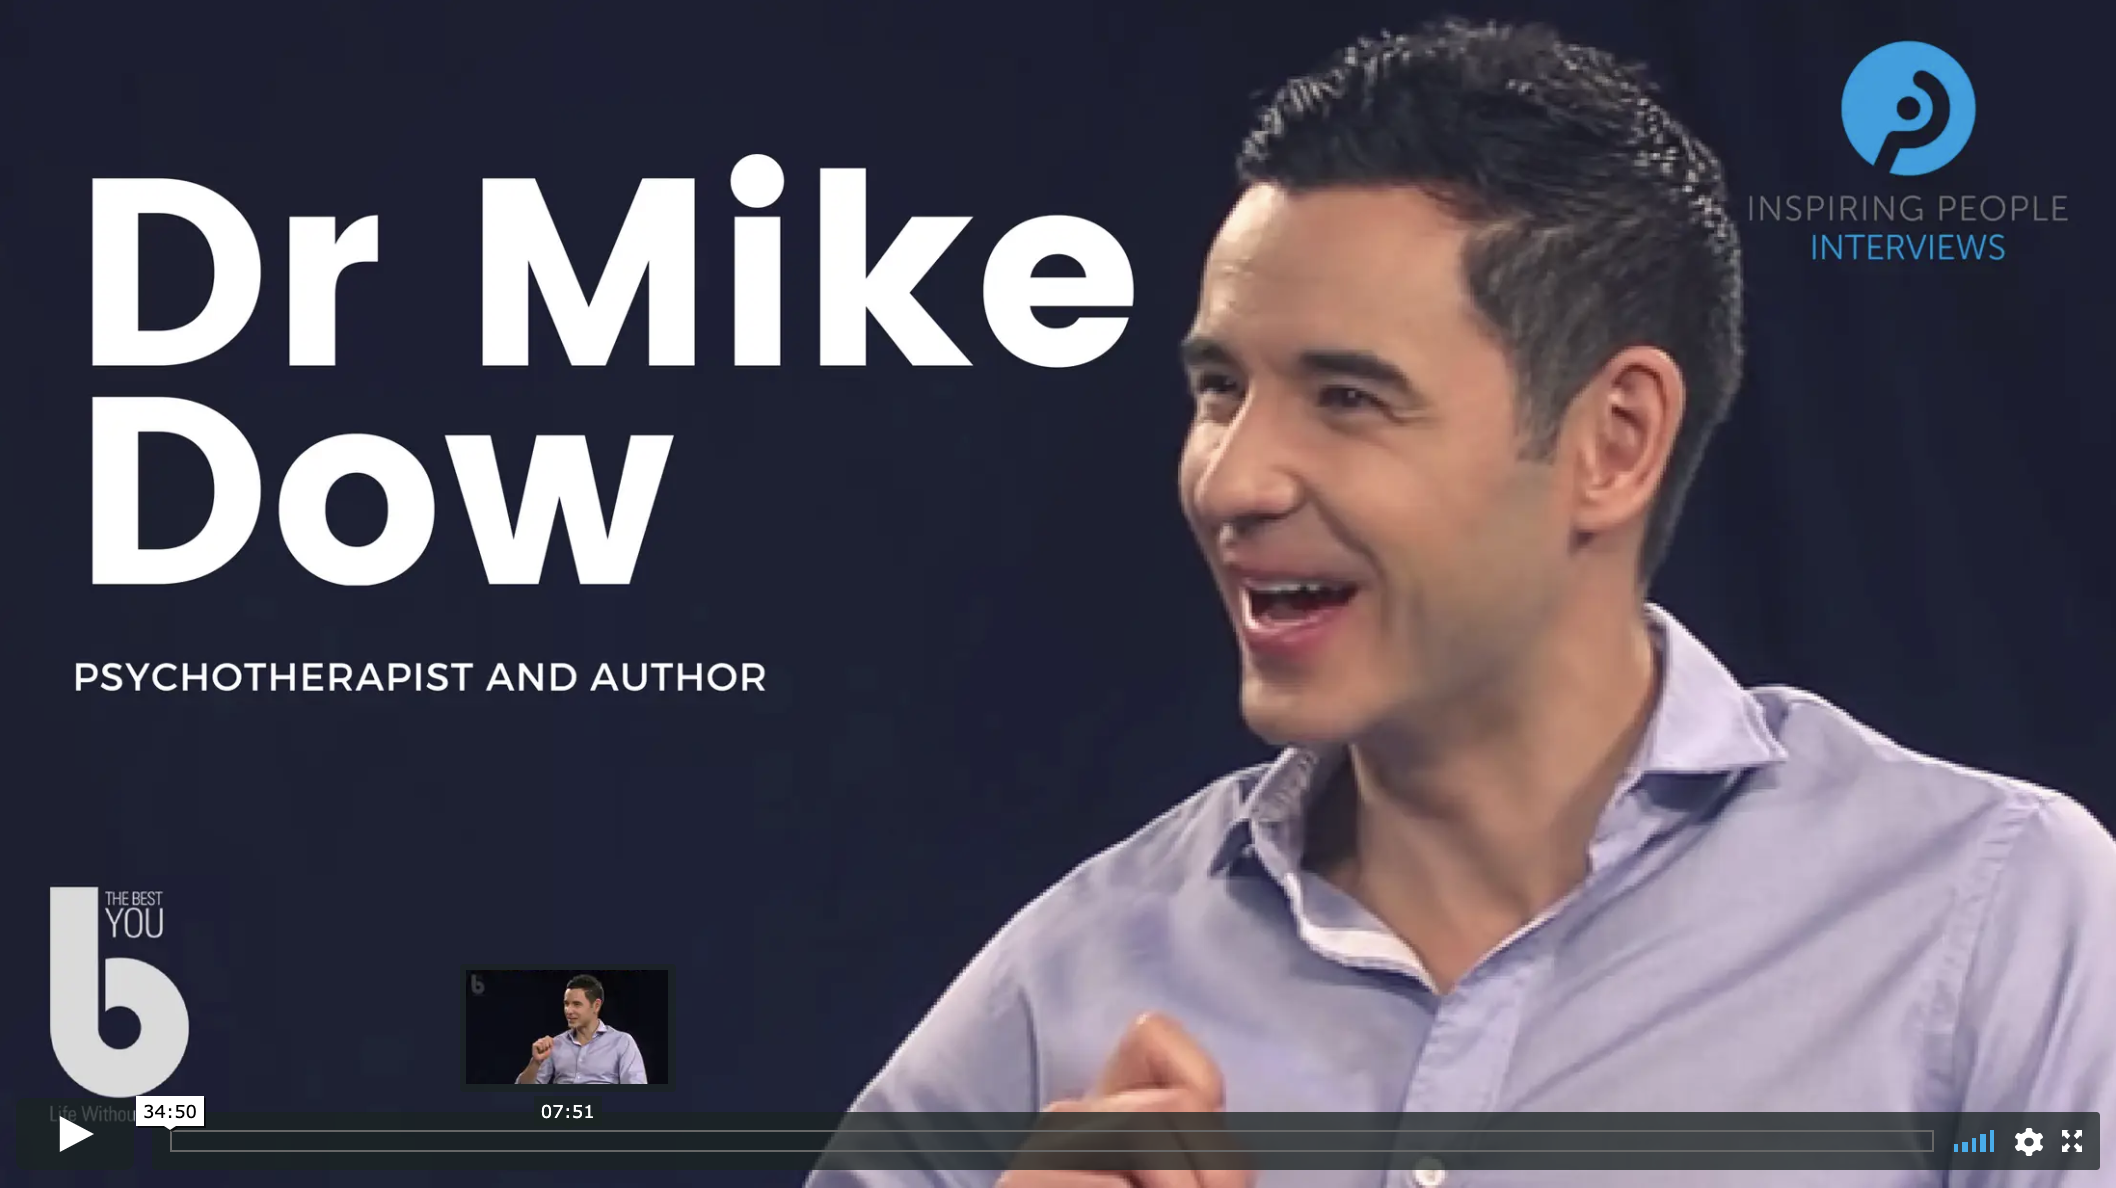 Dr Mike Dow - Inspiring People Interview